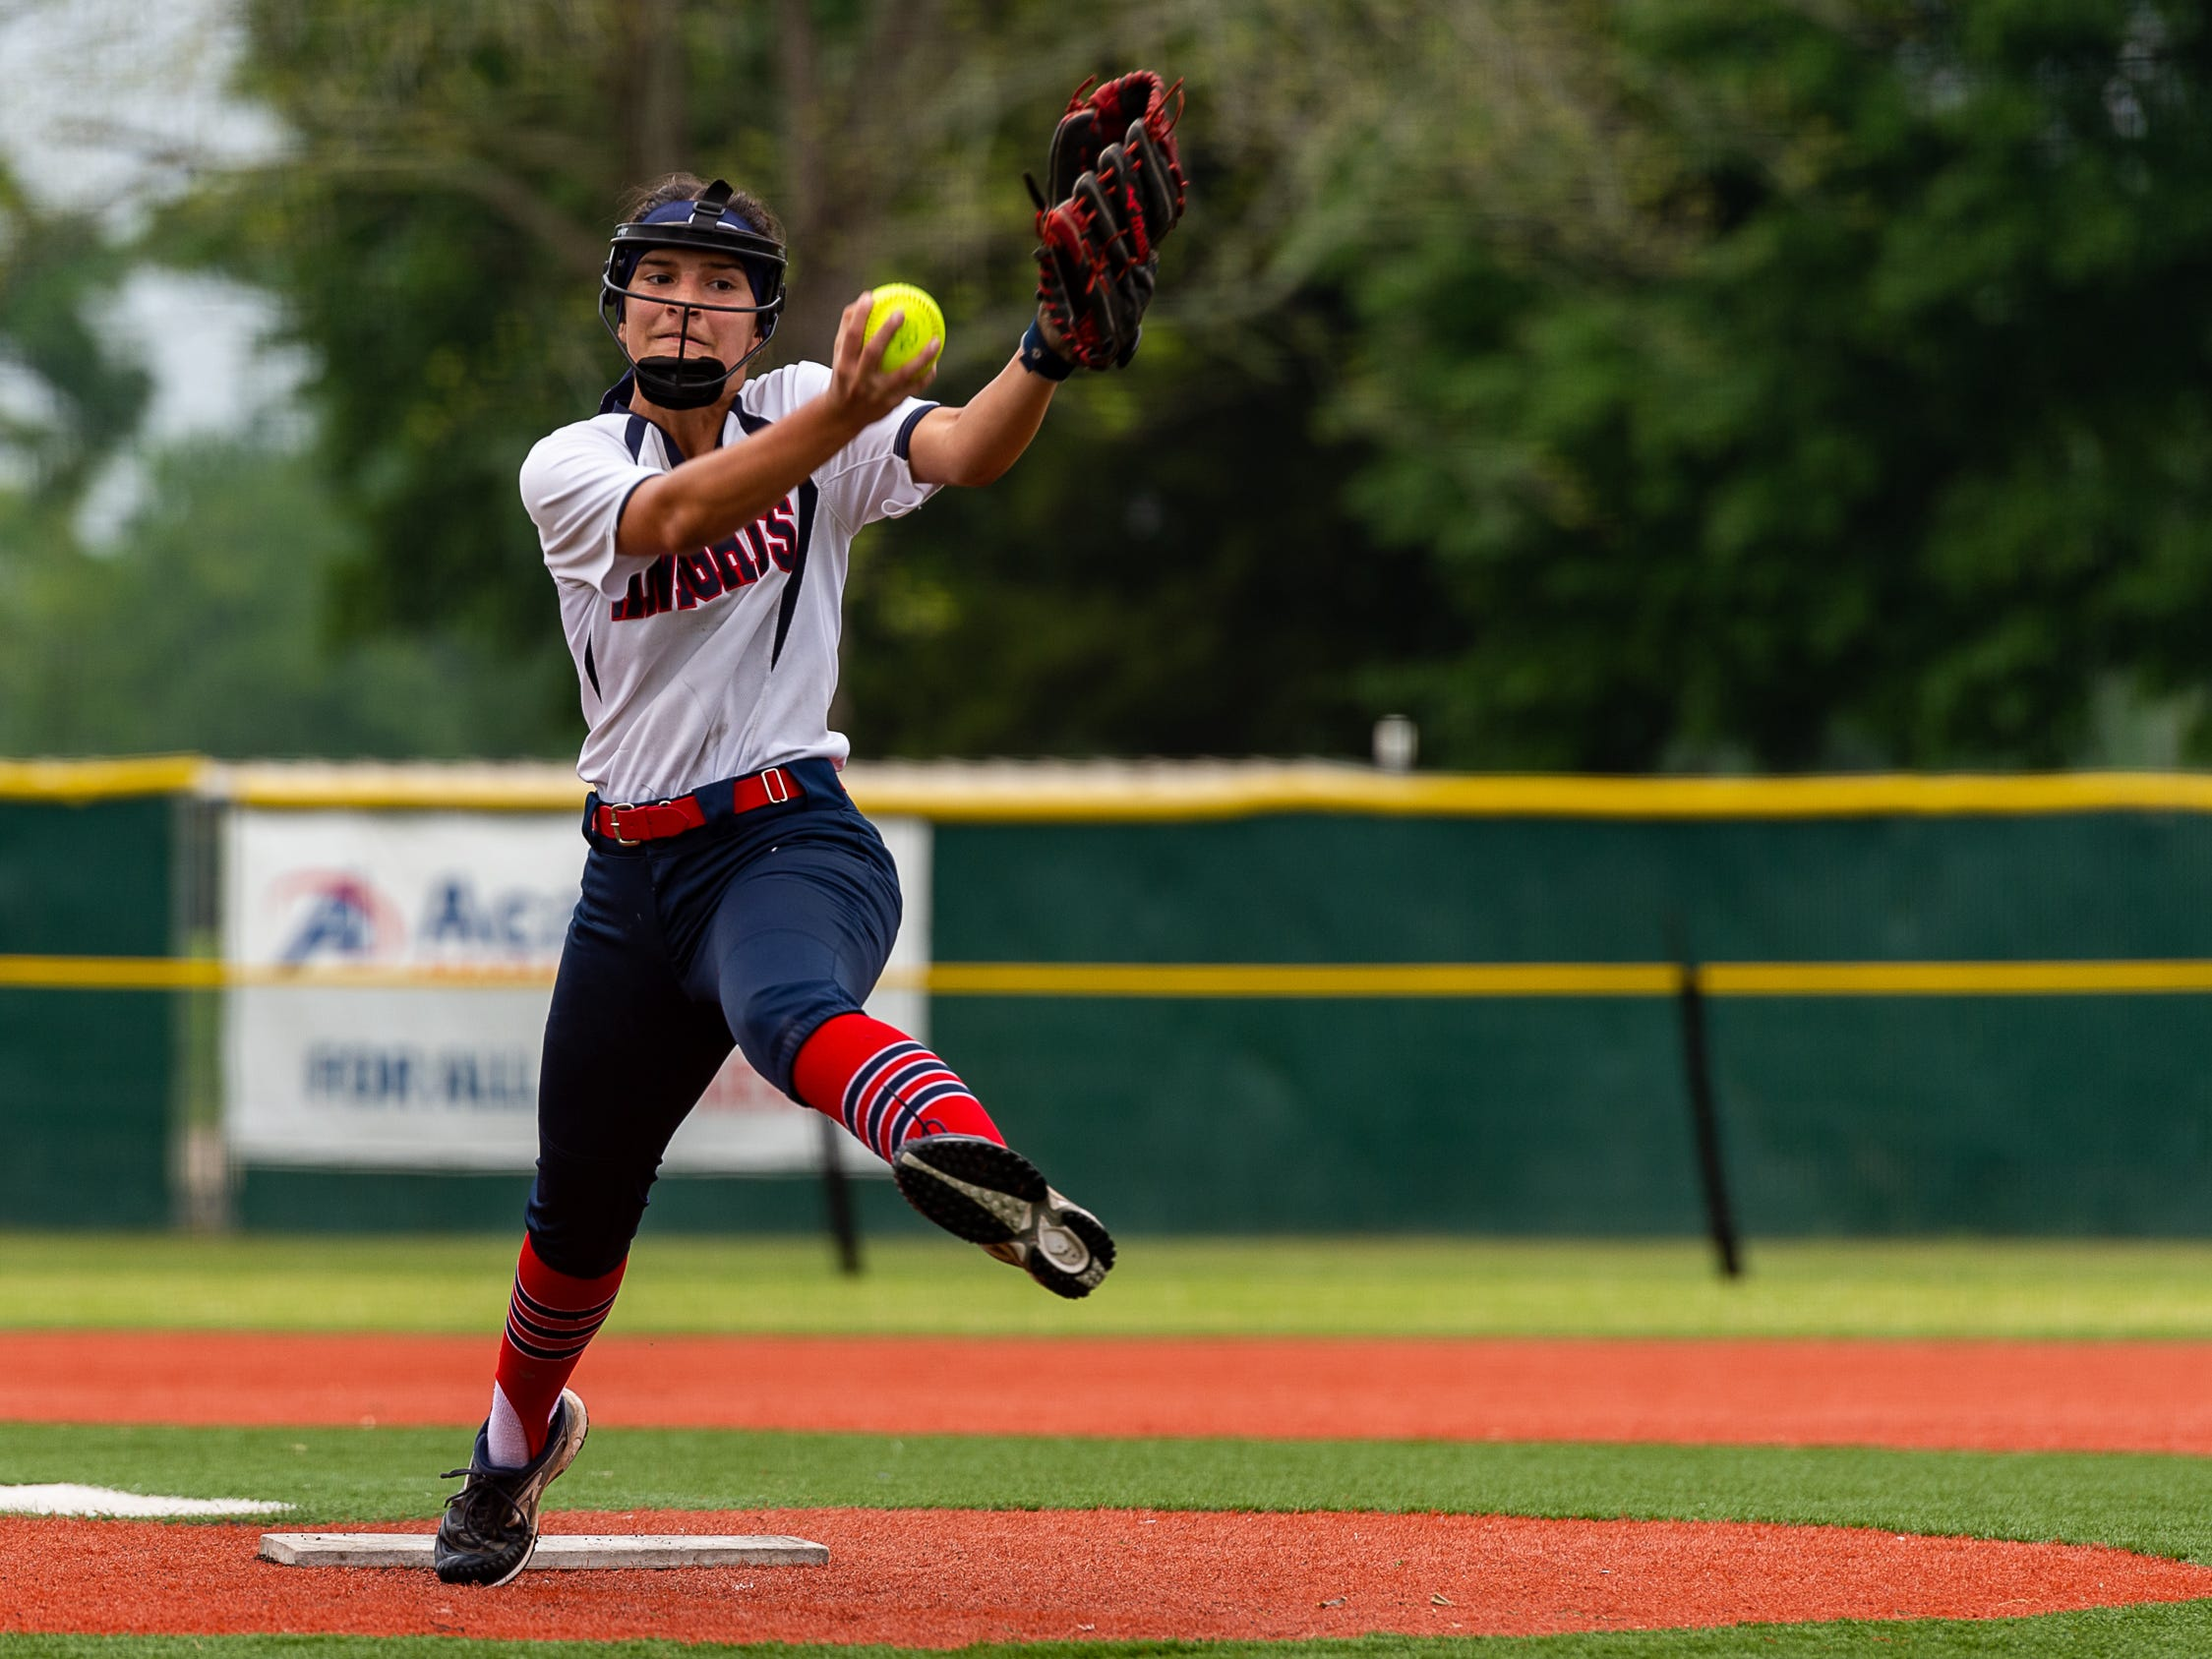 Pitcher Janci Aube' in the circle as Lafayette Christian Academy softball takes on University Academy in the forst round of the LHSAA playoffs. Friday, April 12, 2019.